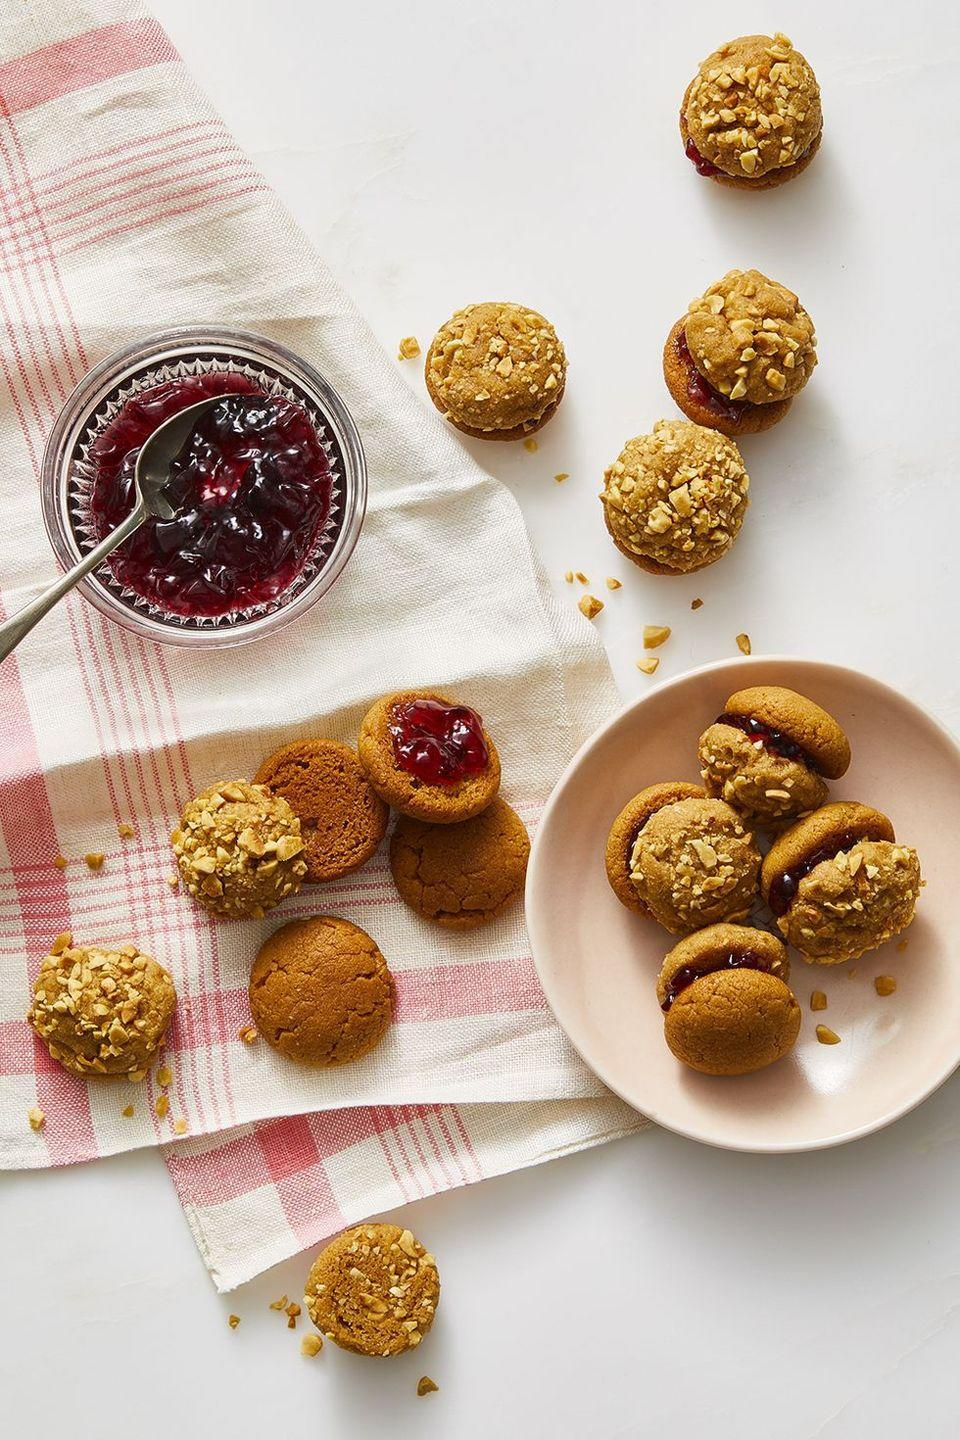 """<p>Serve up these poppable peanut butter cookies spread with grape jam as an after school snack or, even better, a sweet spring dessert.</p><p><em><a href=""""https://www.womansday.com/food-recipes/food-drinks/a28797240/grape-jamwiches-recipe/"""" rel=""""nofollow noopener"""" target=""""_blank"""" data-ylk=""""slk:Get the recipe from Woman's Day »"""" class=""""link rapid-noclick-resp"""">Get the recipe from Woman's Day »</a></em></p>"""